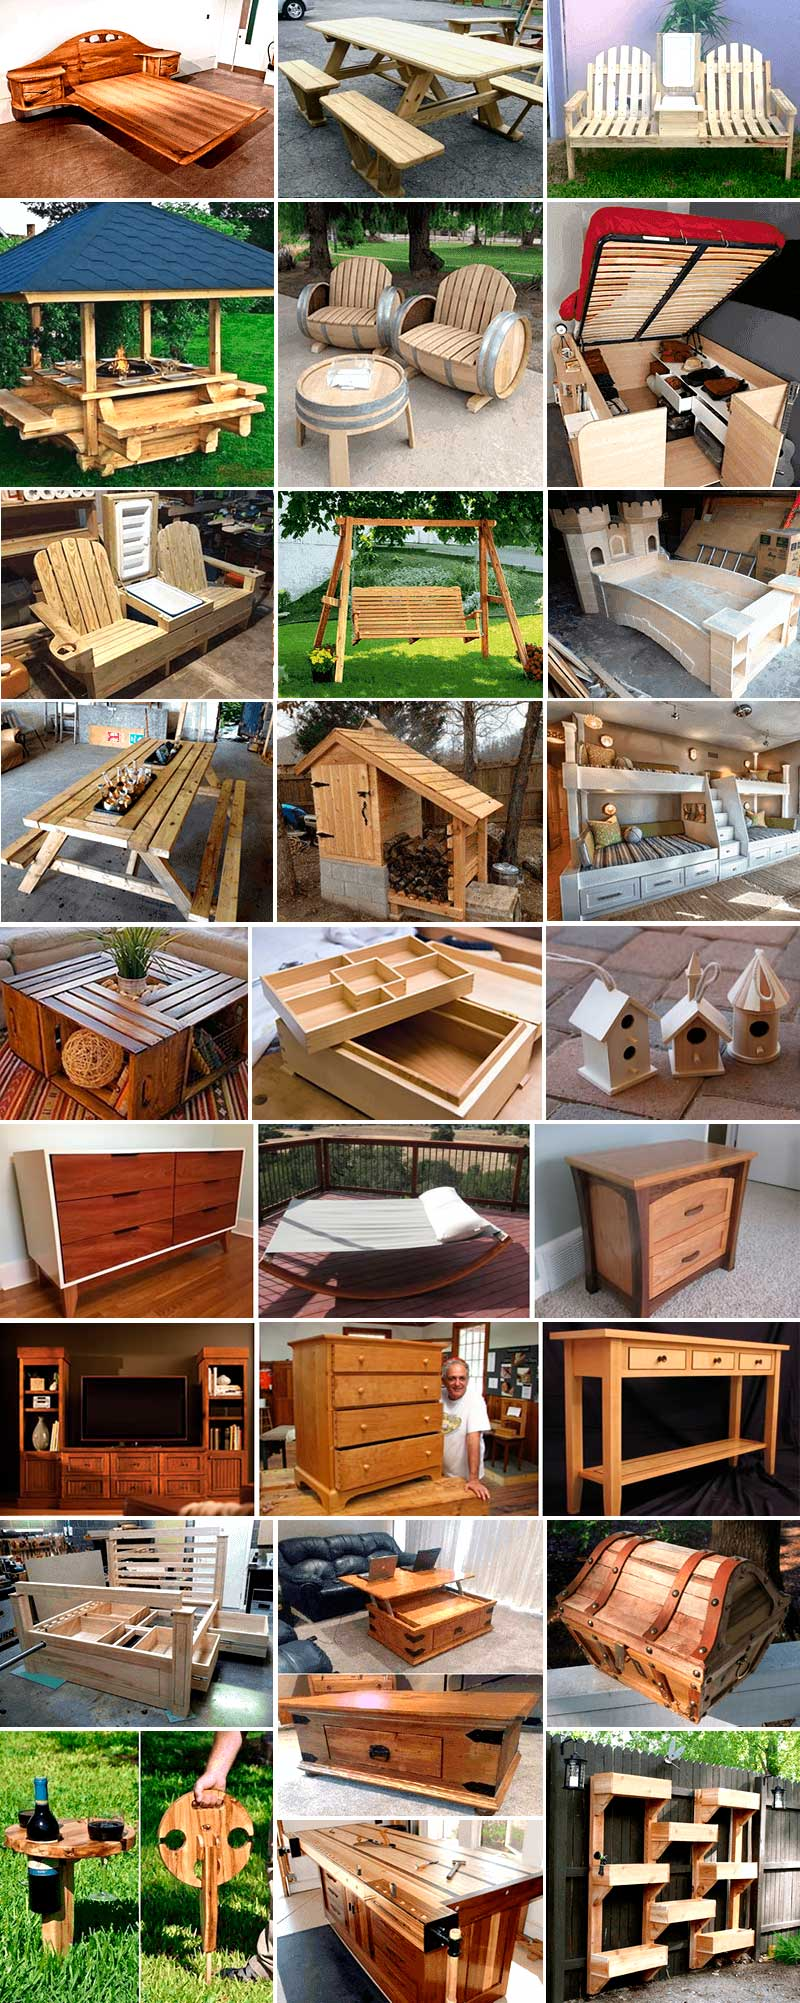 woodworking projects 1, Optin Woodworking Plans